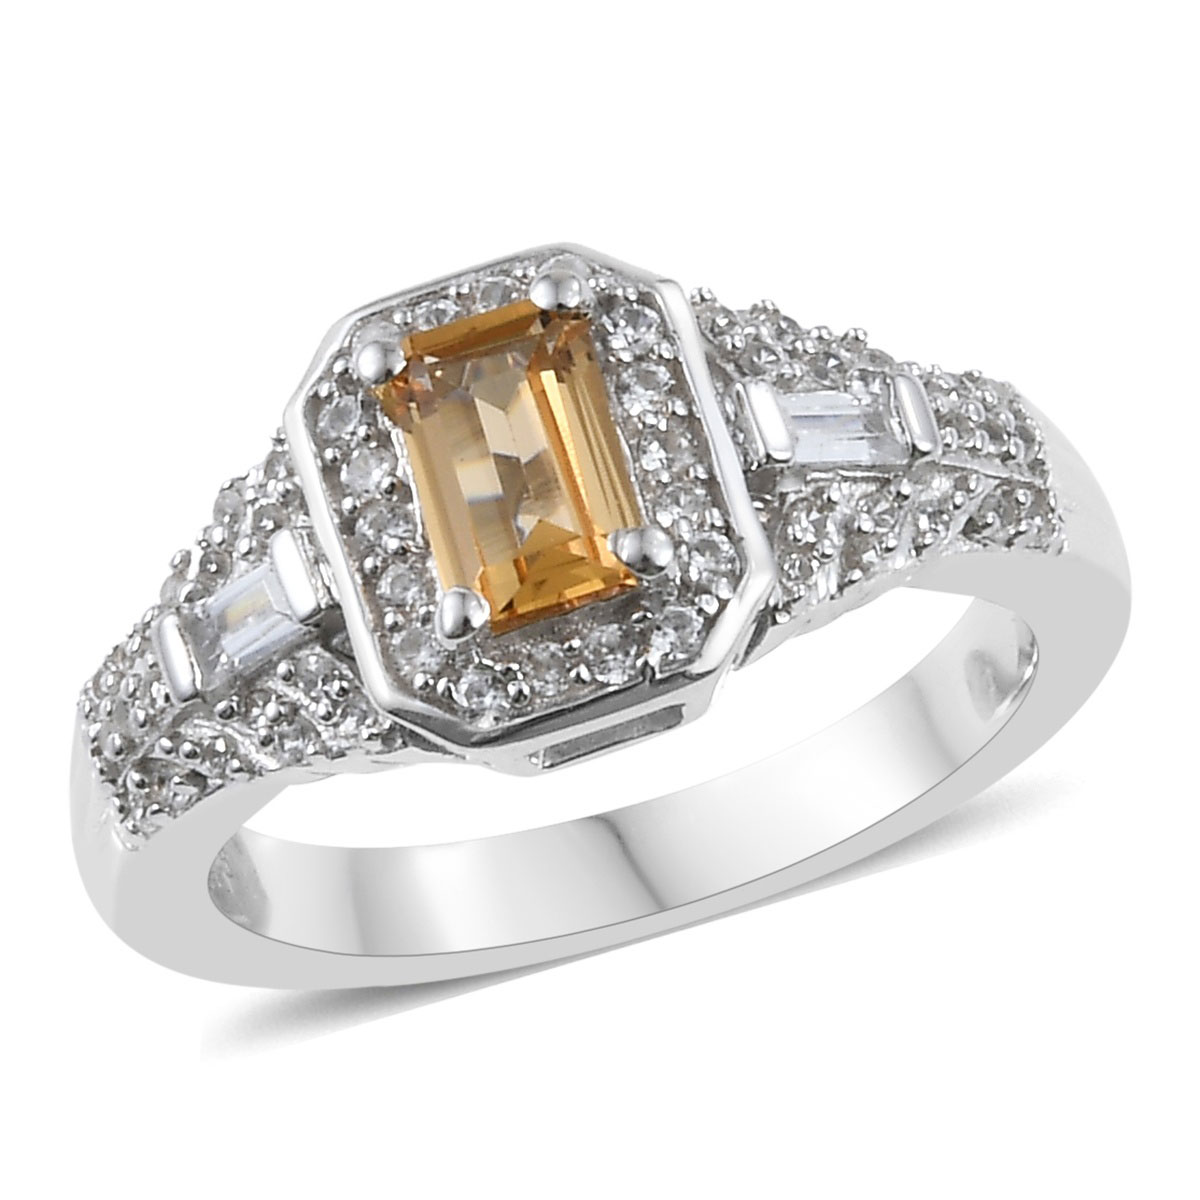 Golden Imperial Topaz, Zircon Ring in Platinum Over Sterling Silver (Size 9.0) 1.04 ctw